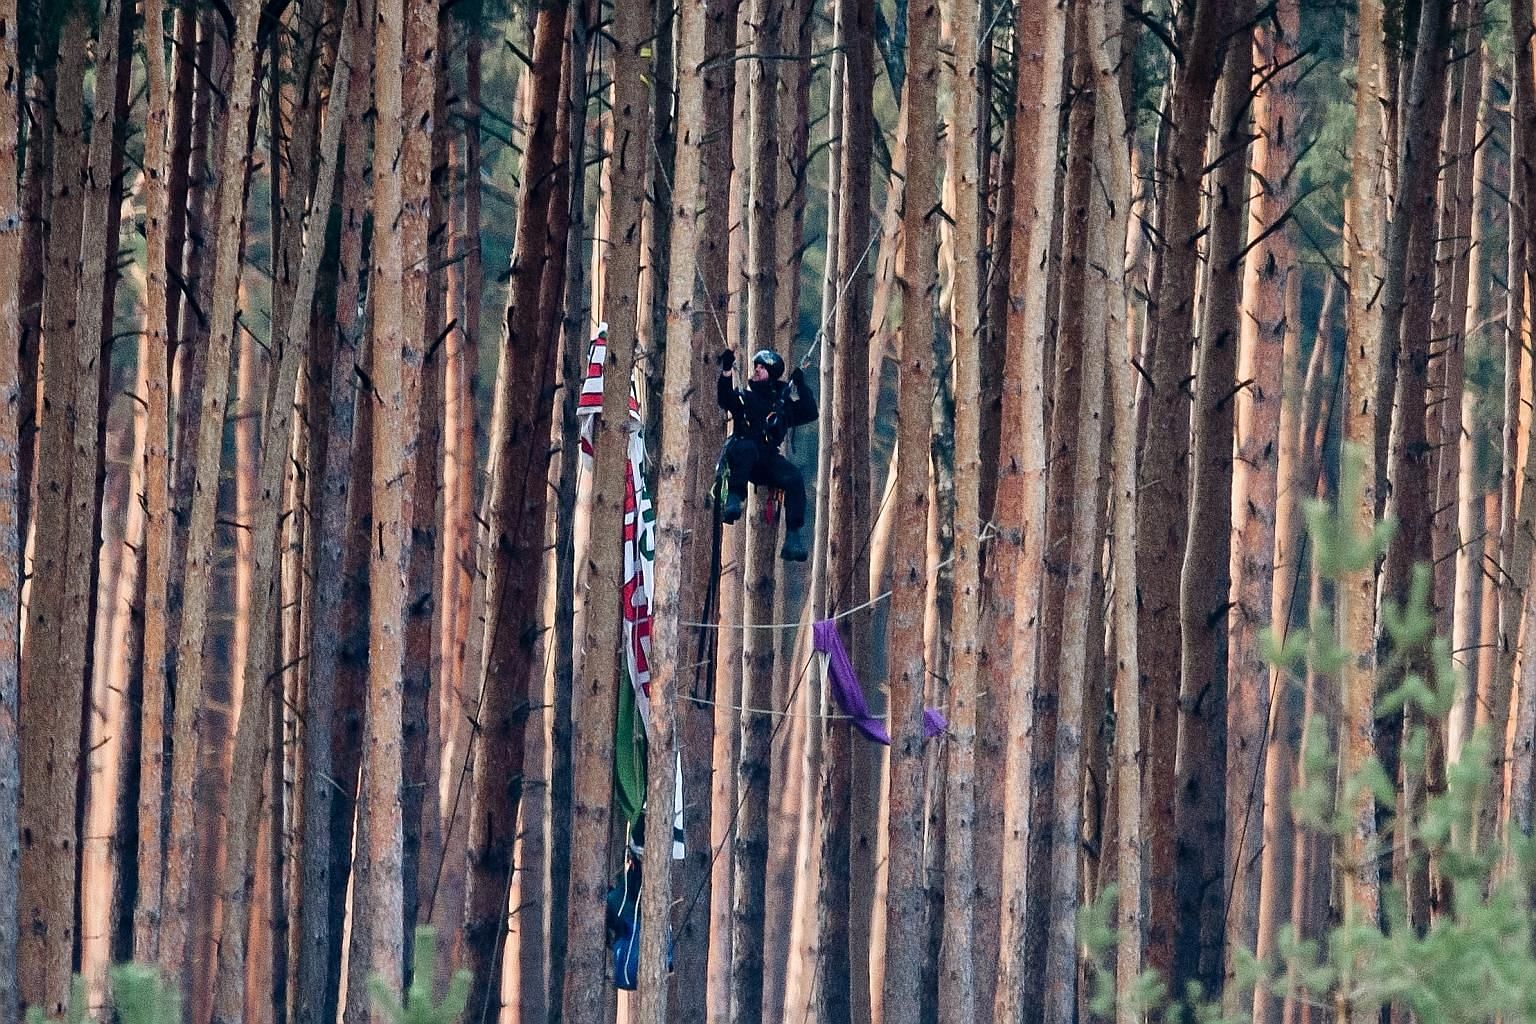 A police officer climbing a tree in a forest to remove a banner, presumably put up by environmental activists, and items that look like sleeping bags at the future Tesla Gigafactory construction site in Grunheide, near Berlin, last Friday. Germany's